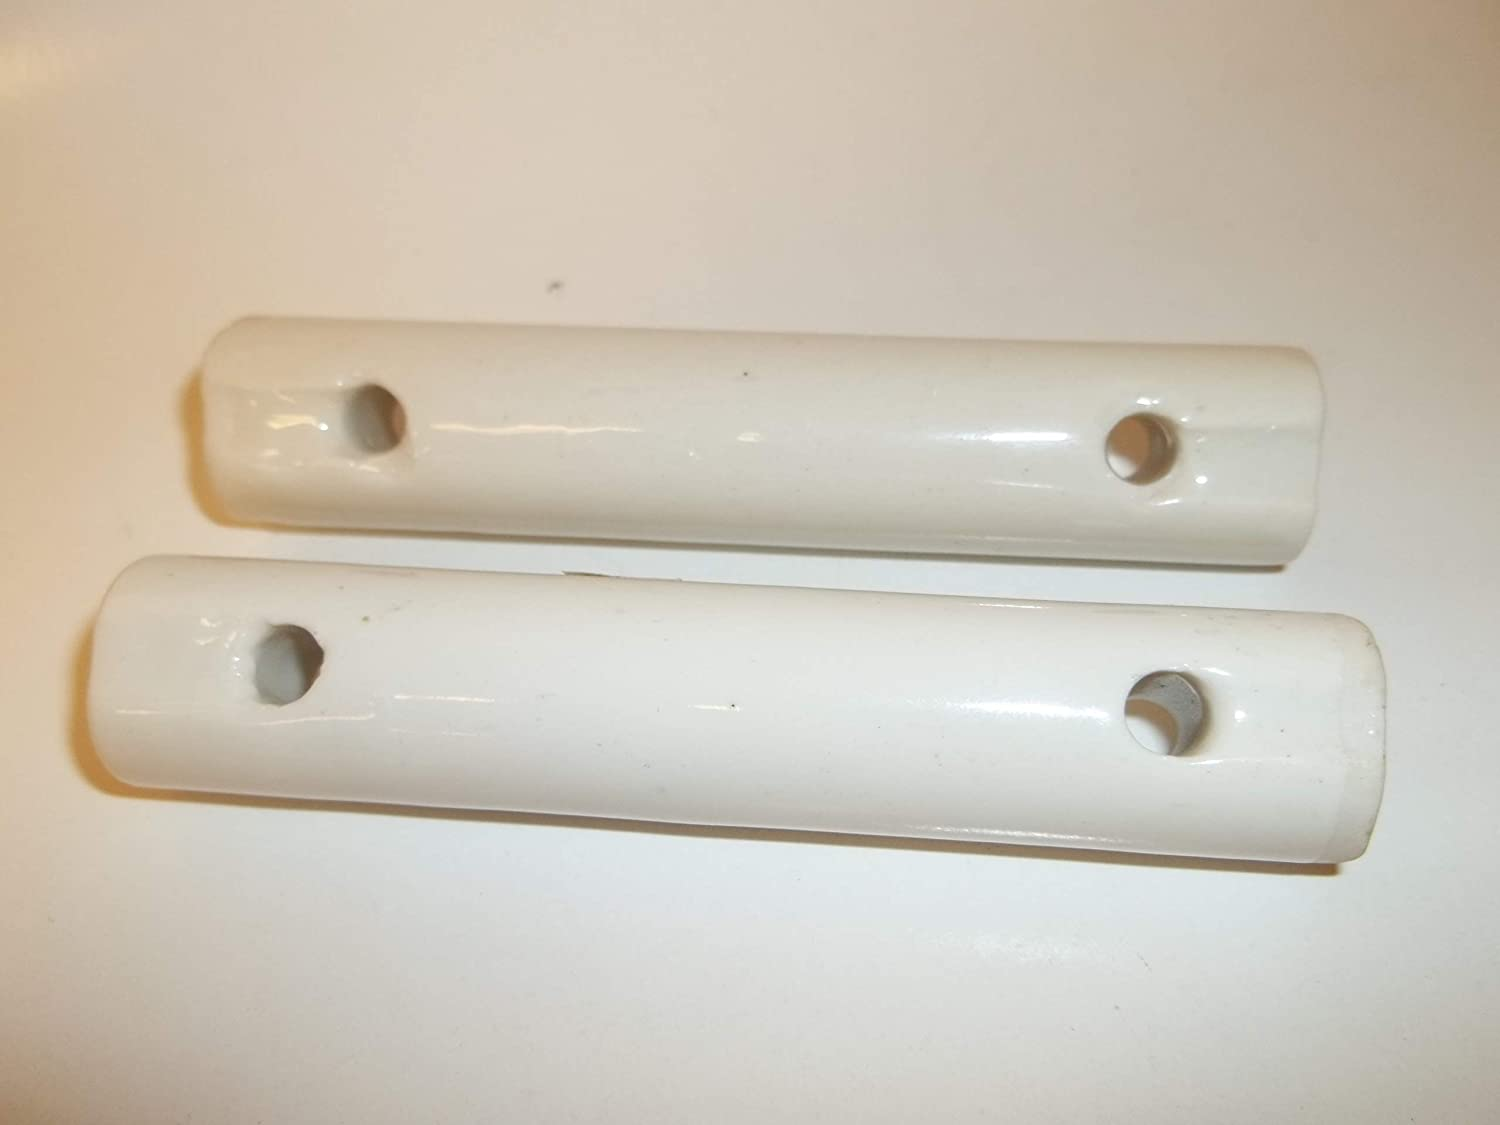 Ceramic Porcelain 4 Long Ham Radio Antenna White Dog Bone Insulator Large 2 pcs